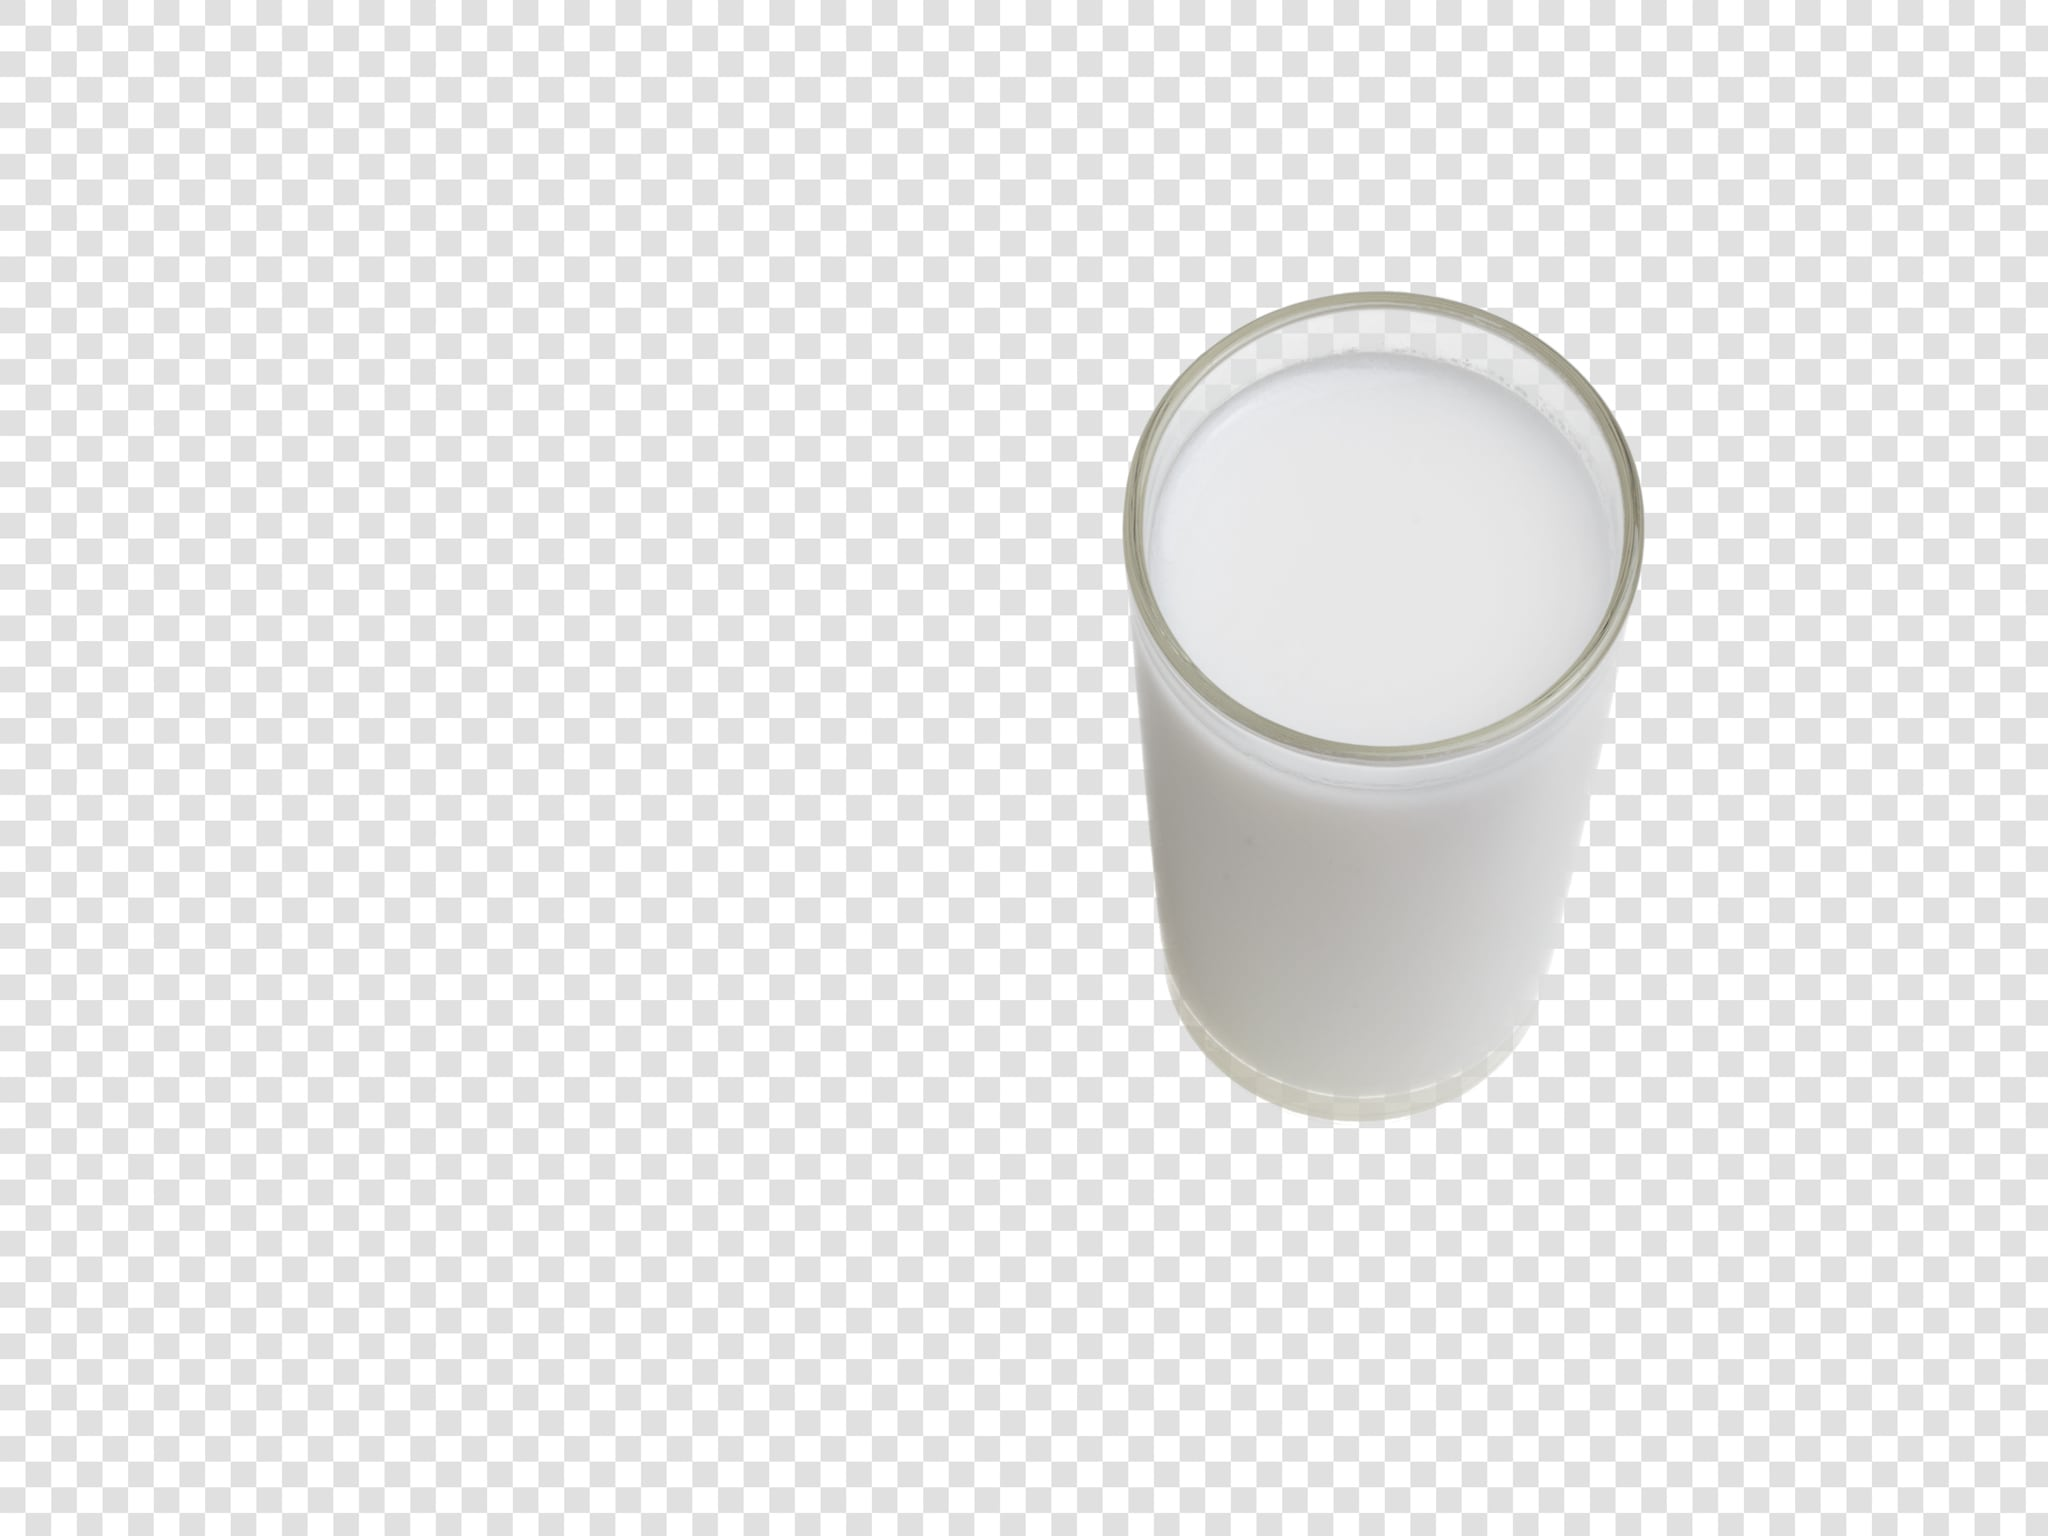 Coconut milk image with transparent background